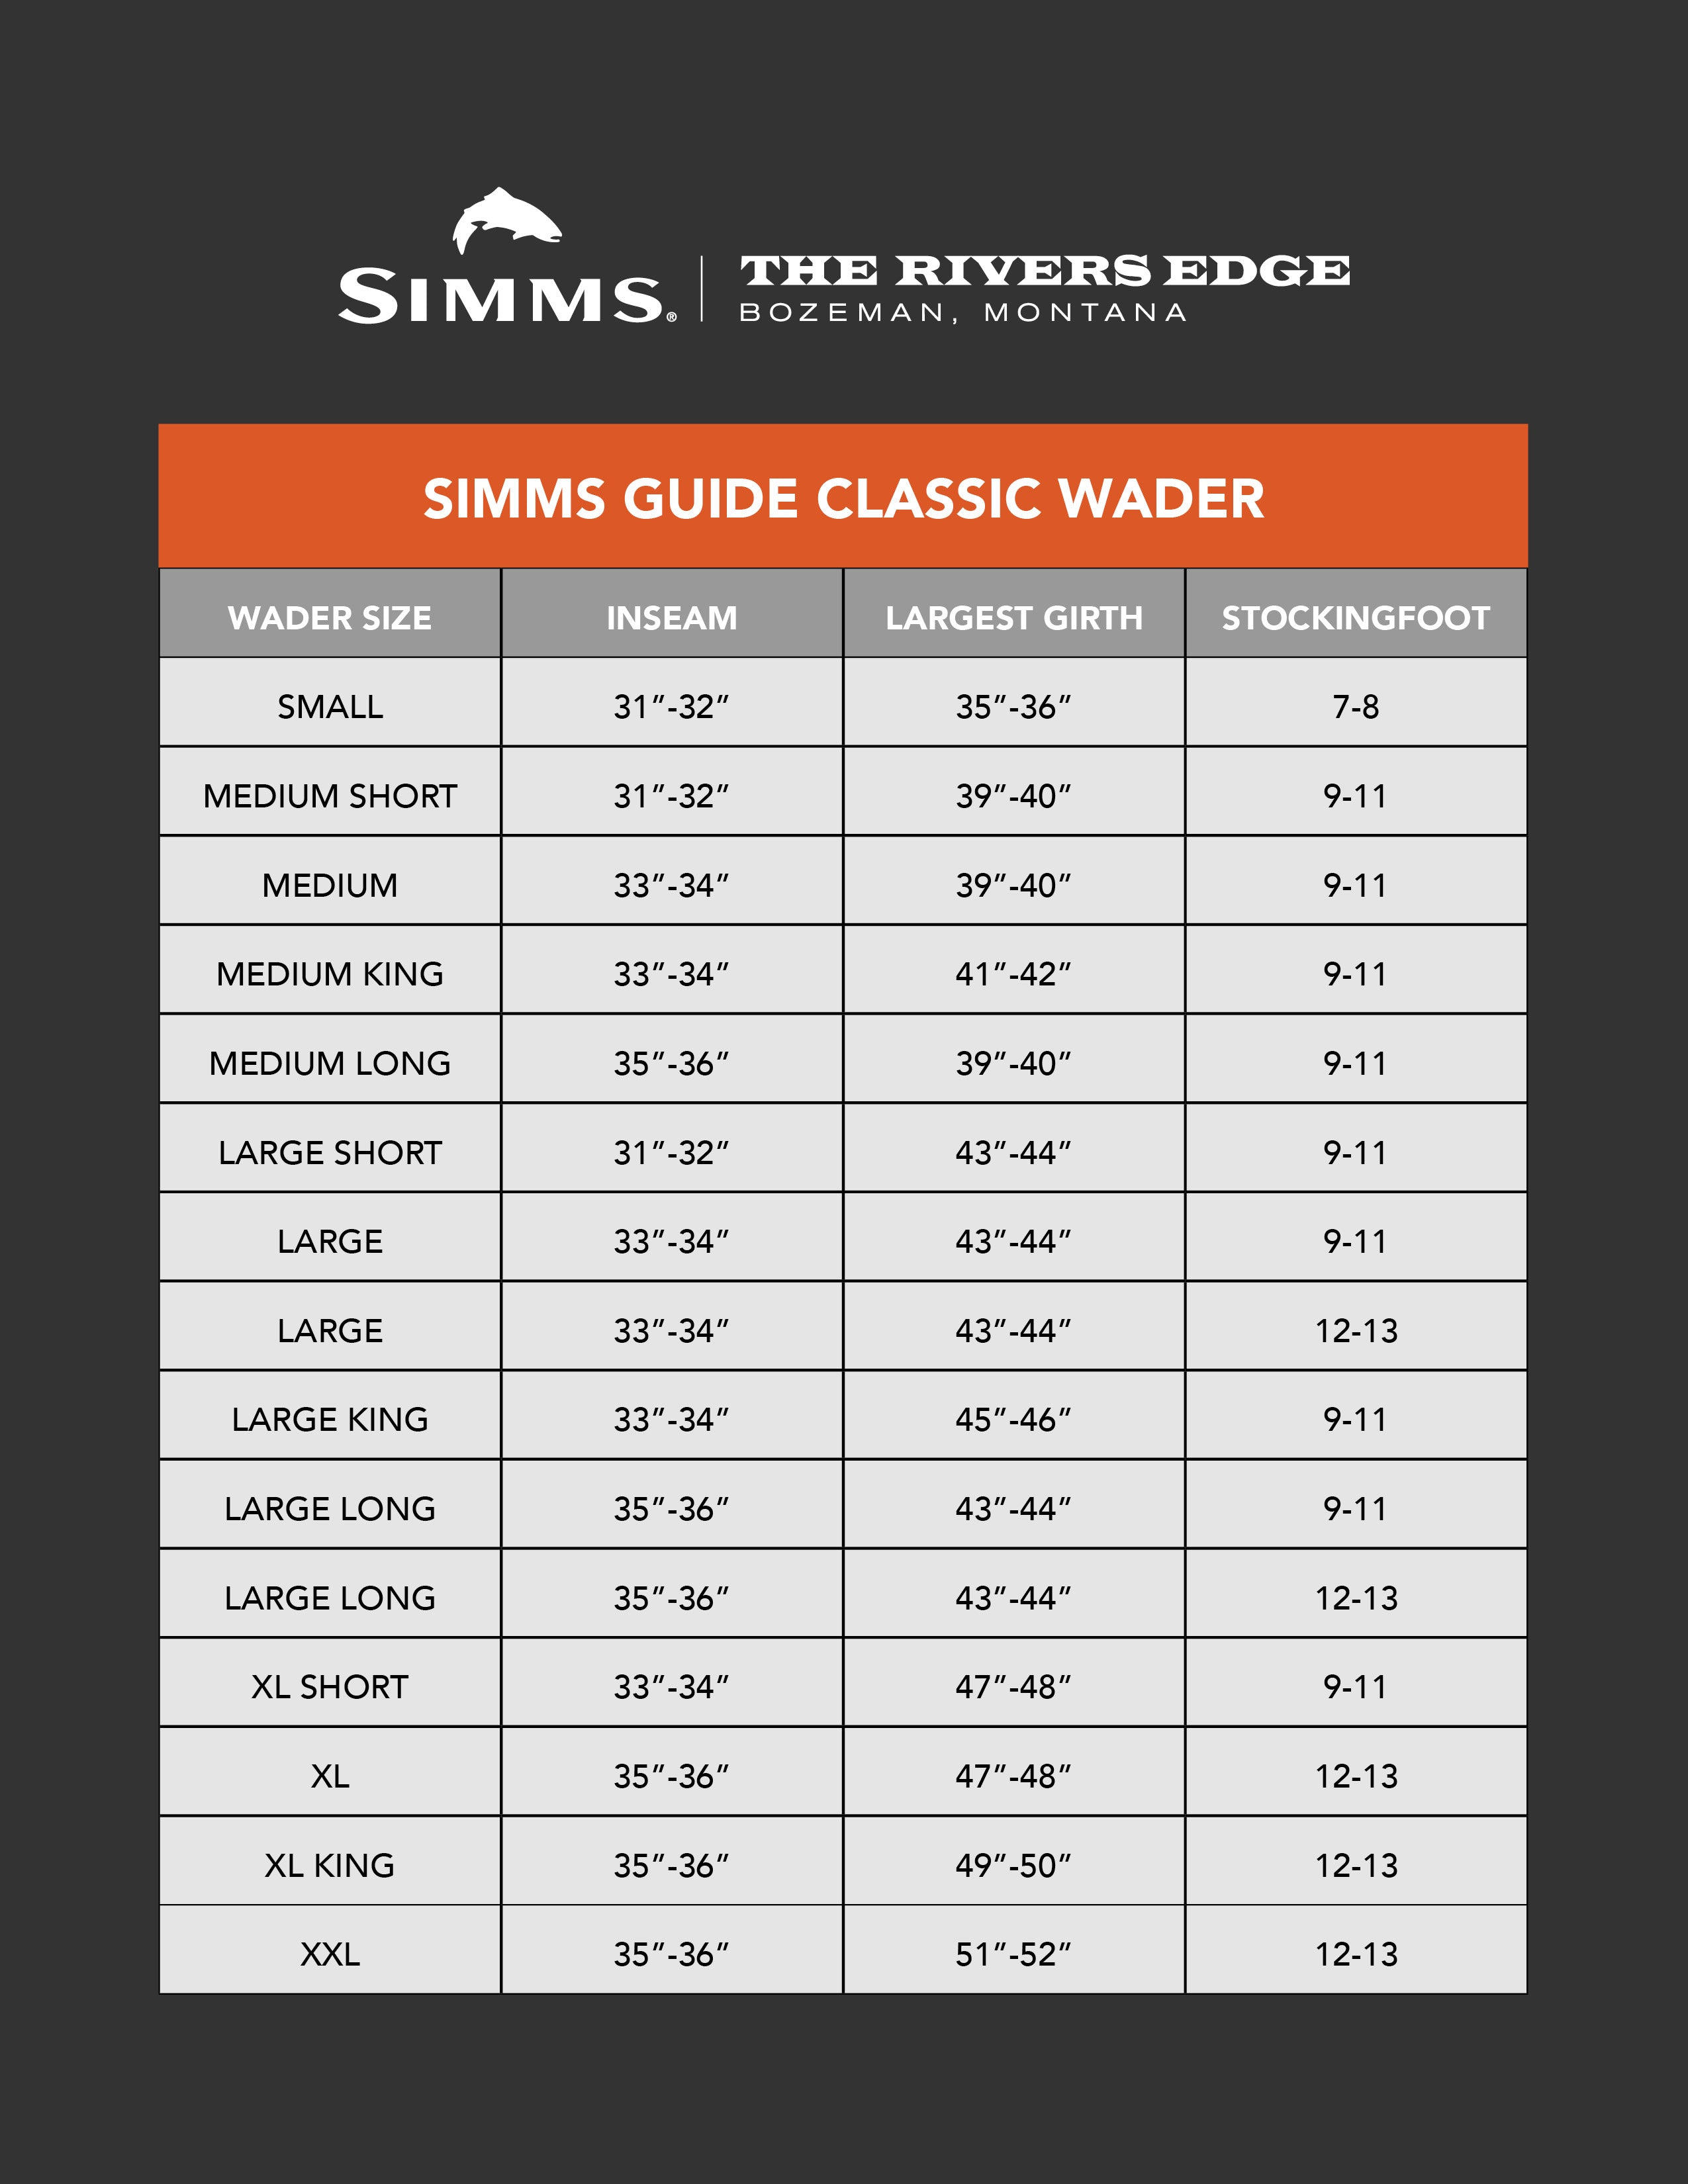 Simms Guide Classic Wader Size Chart